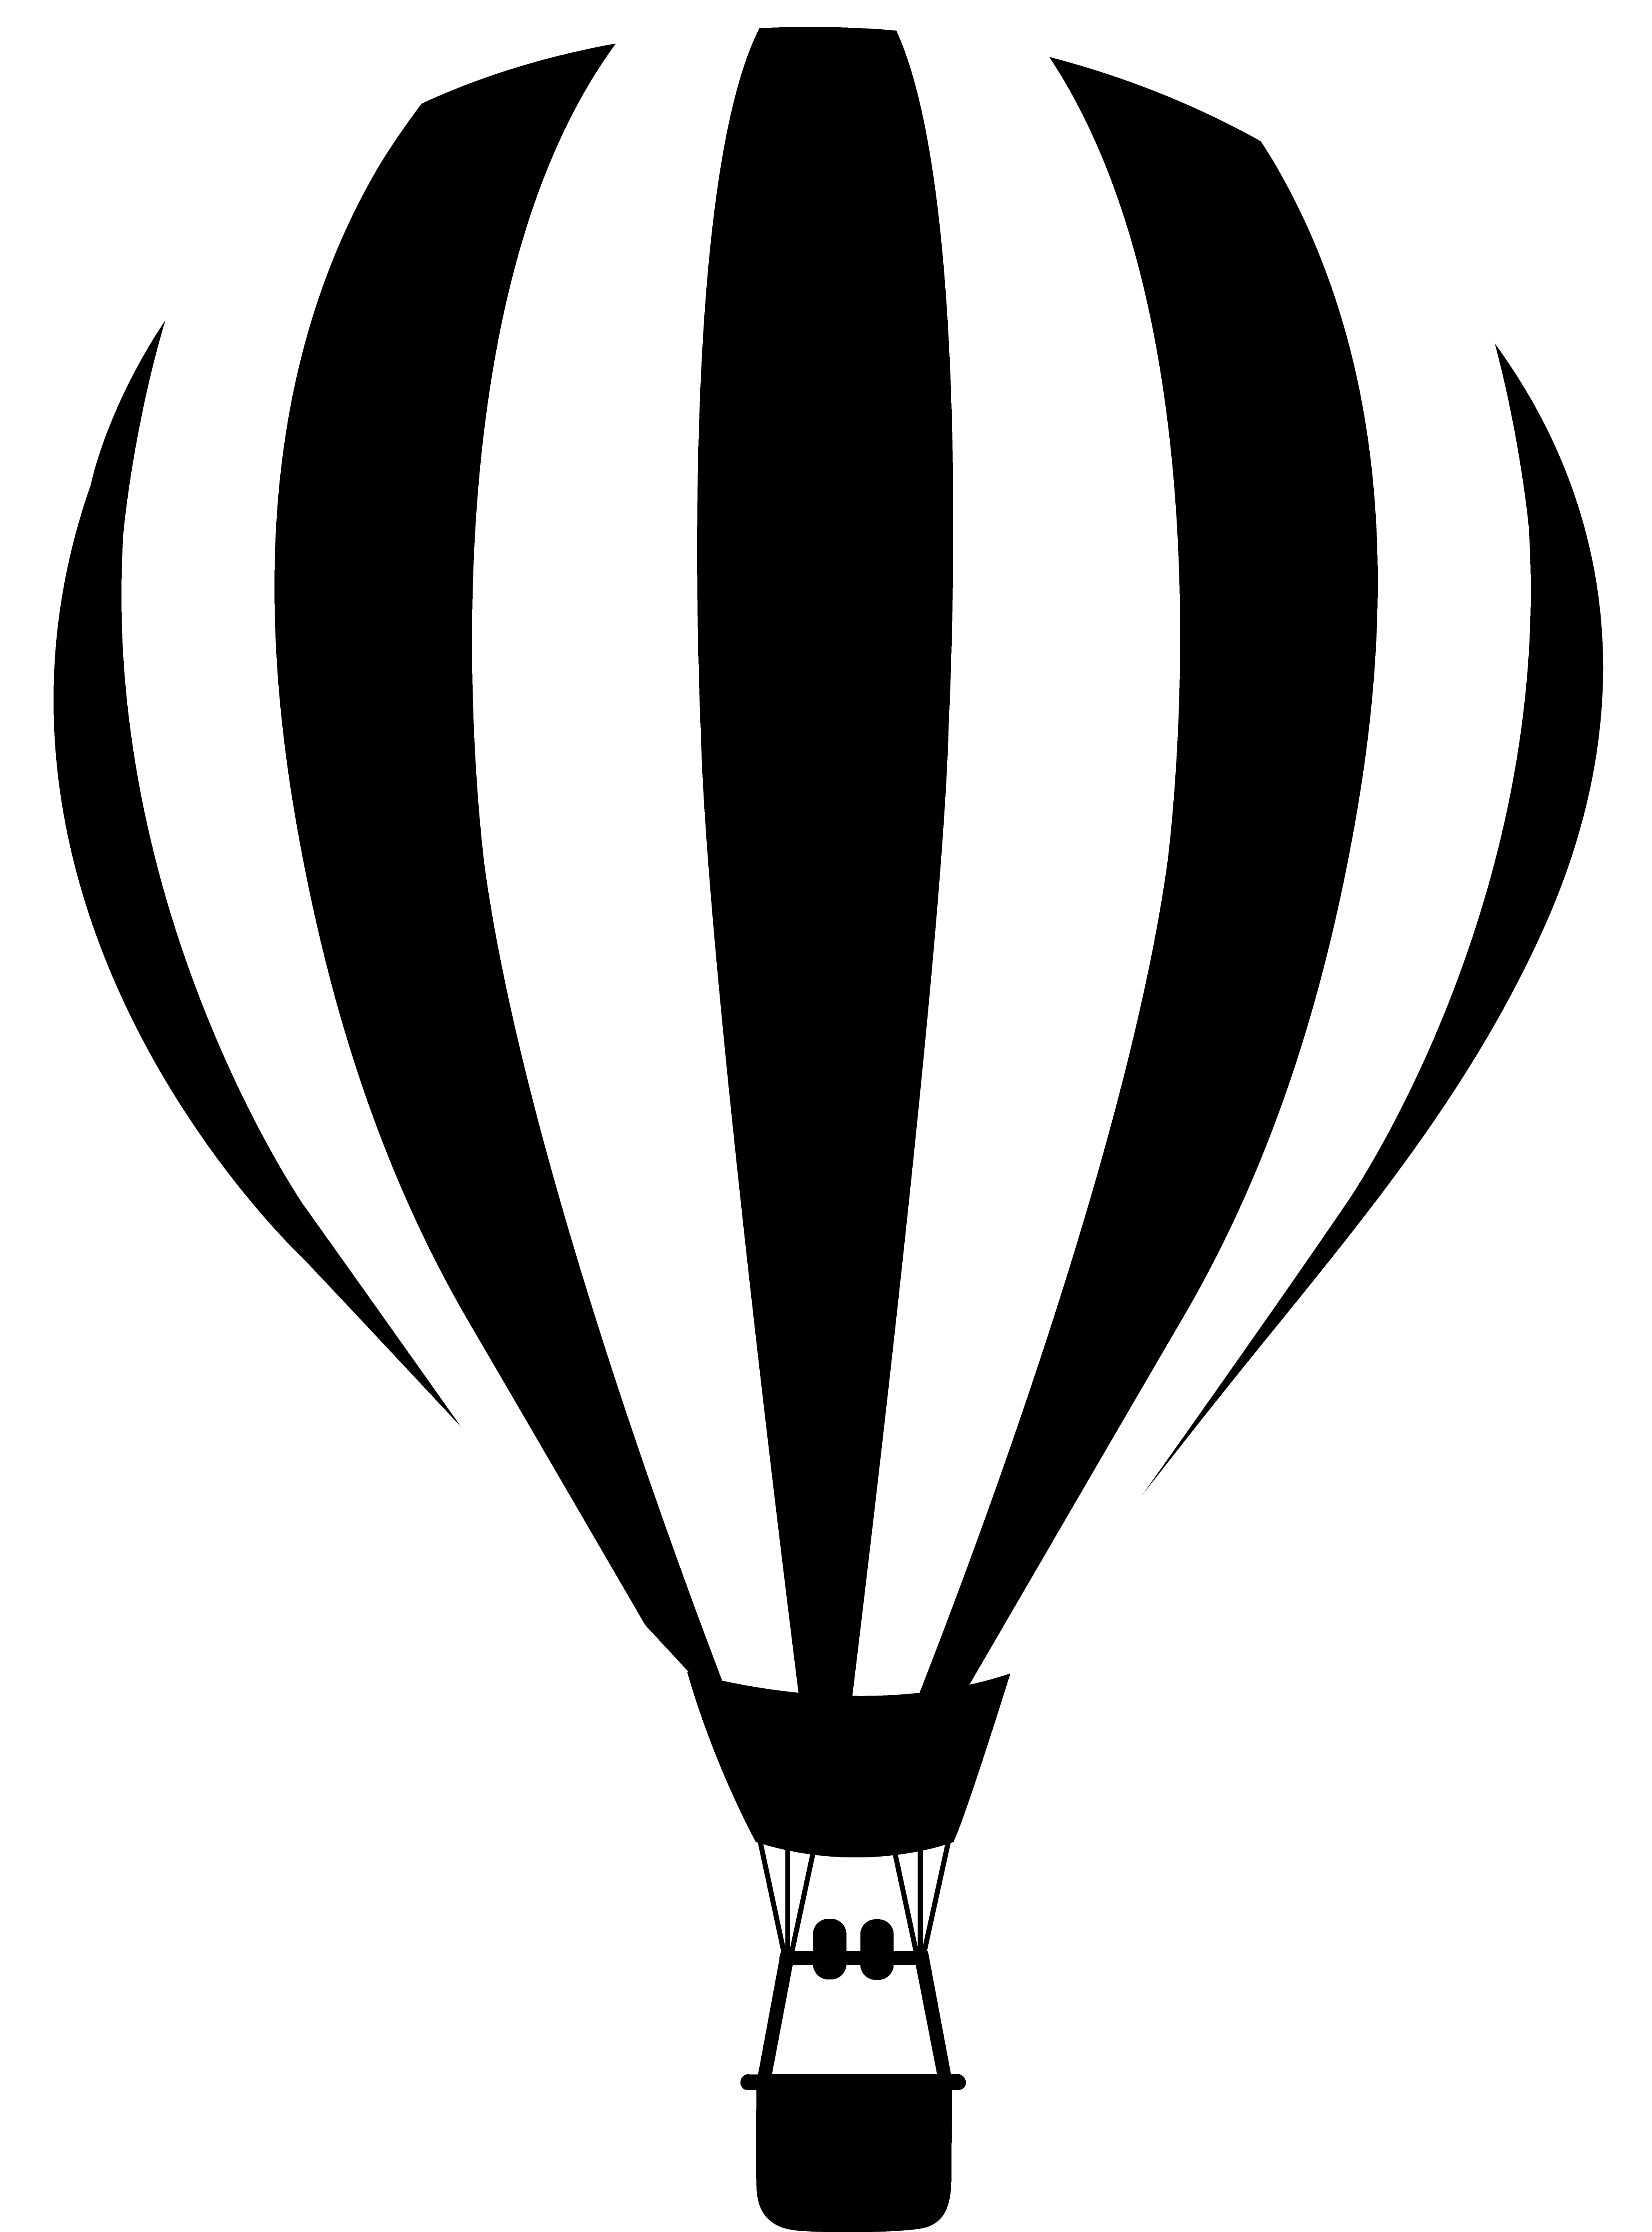 Png Hot Air Balloon Black And White - Black And White Hot Air Balloon Silhouette Png Clipart, Transparent background PNG HD thumbnail